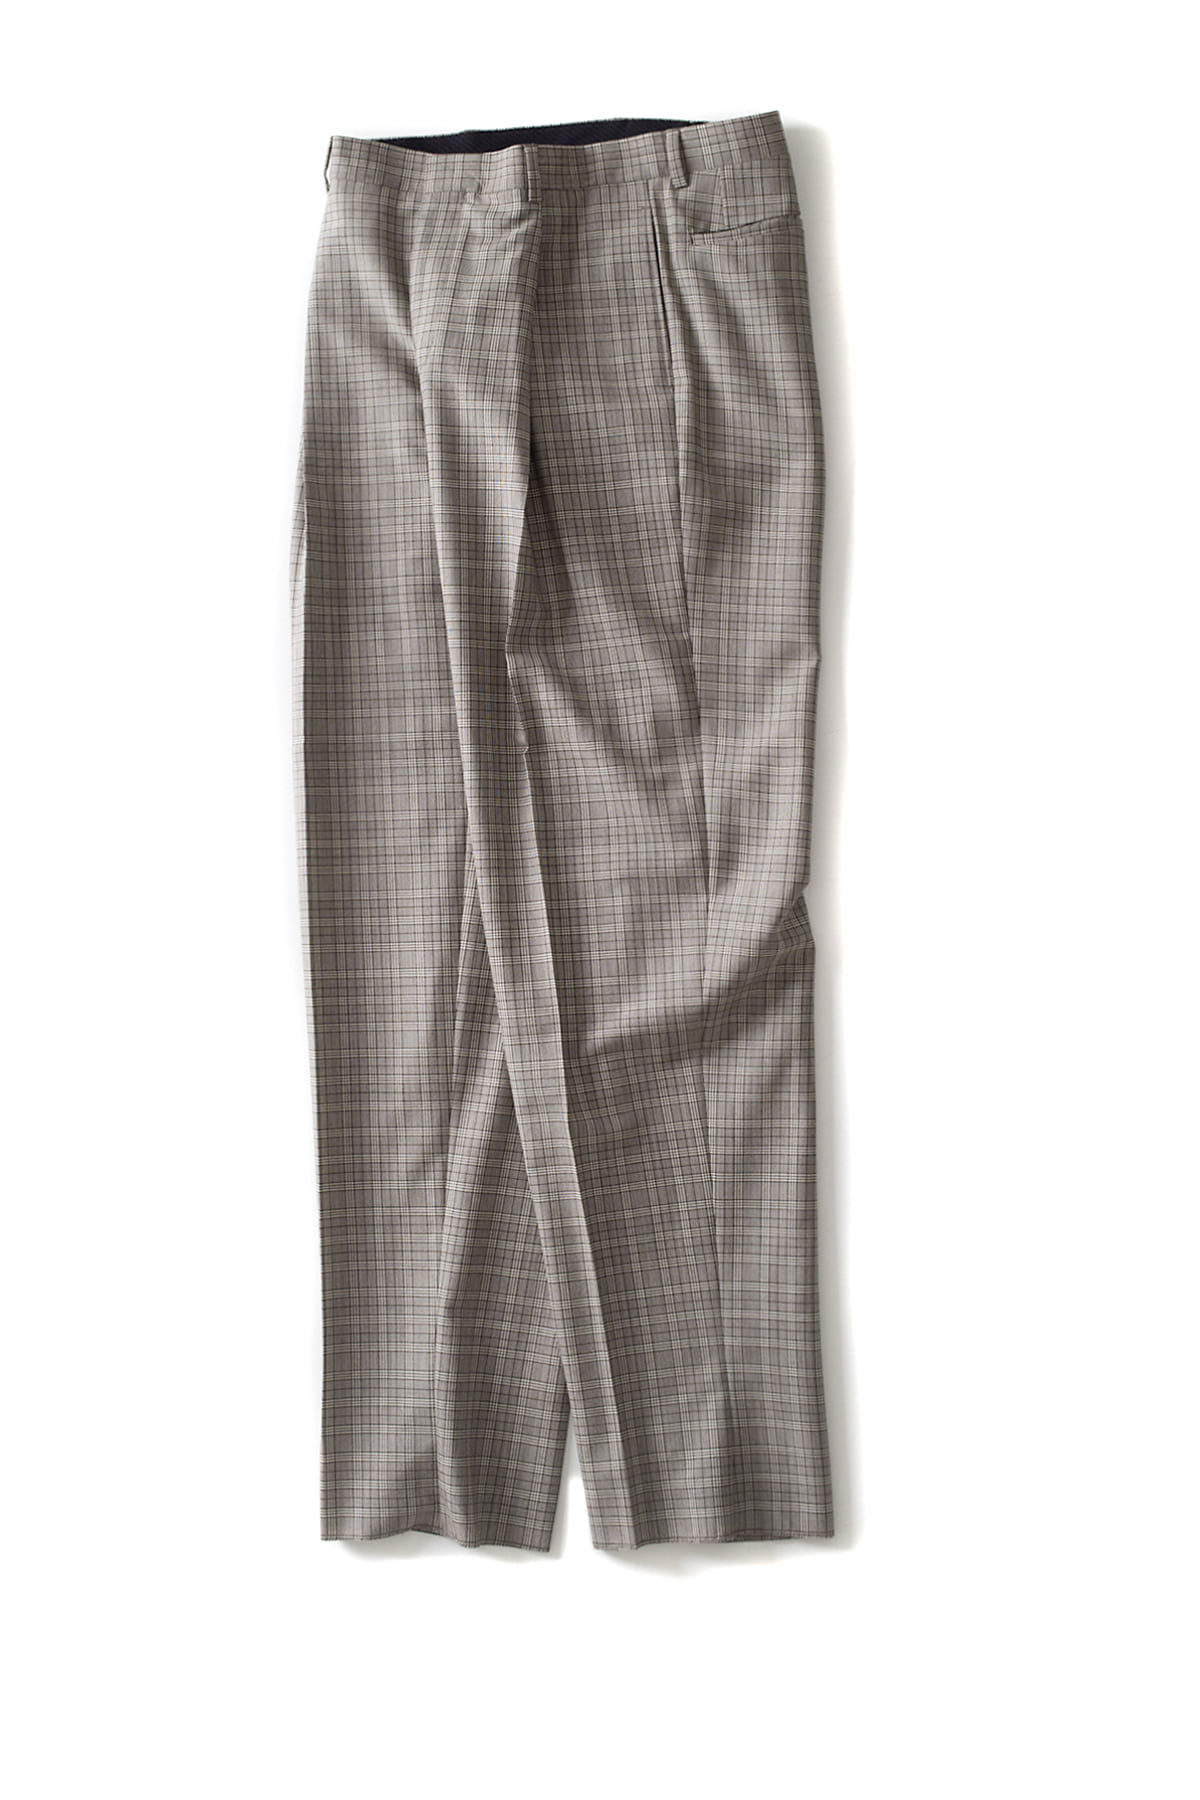 E. Tautz : Pleated Trousers (Glen Check)